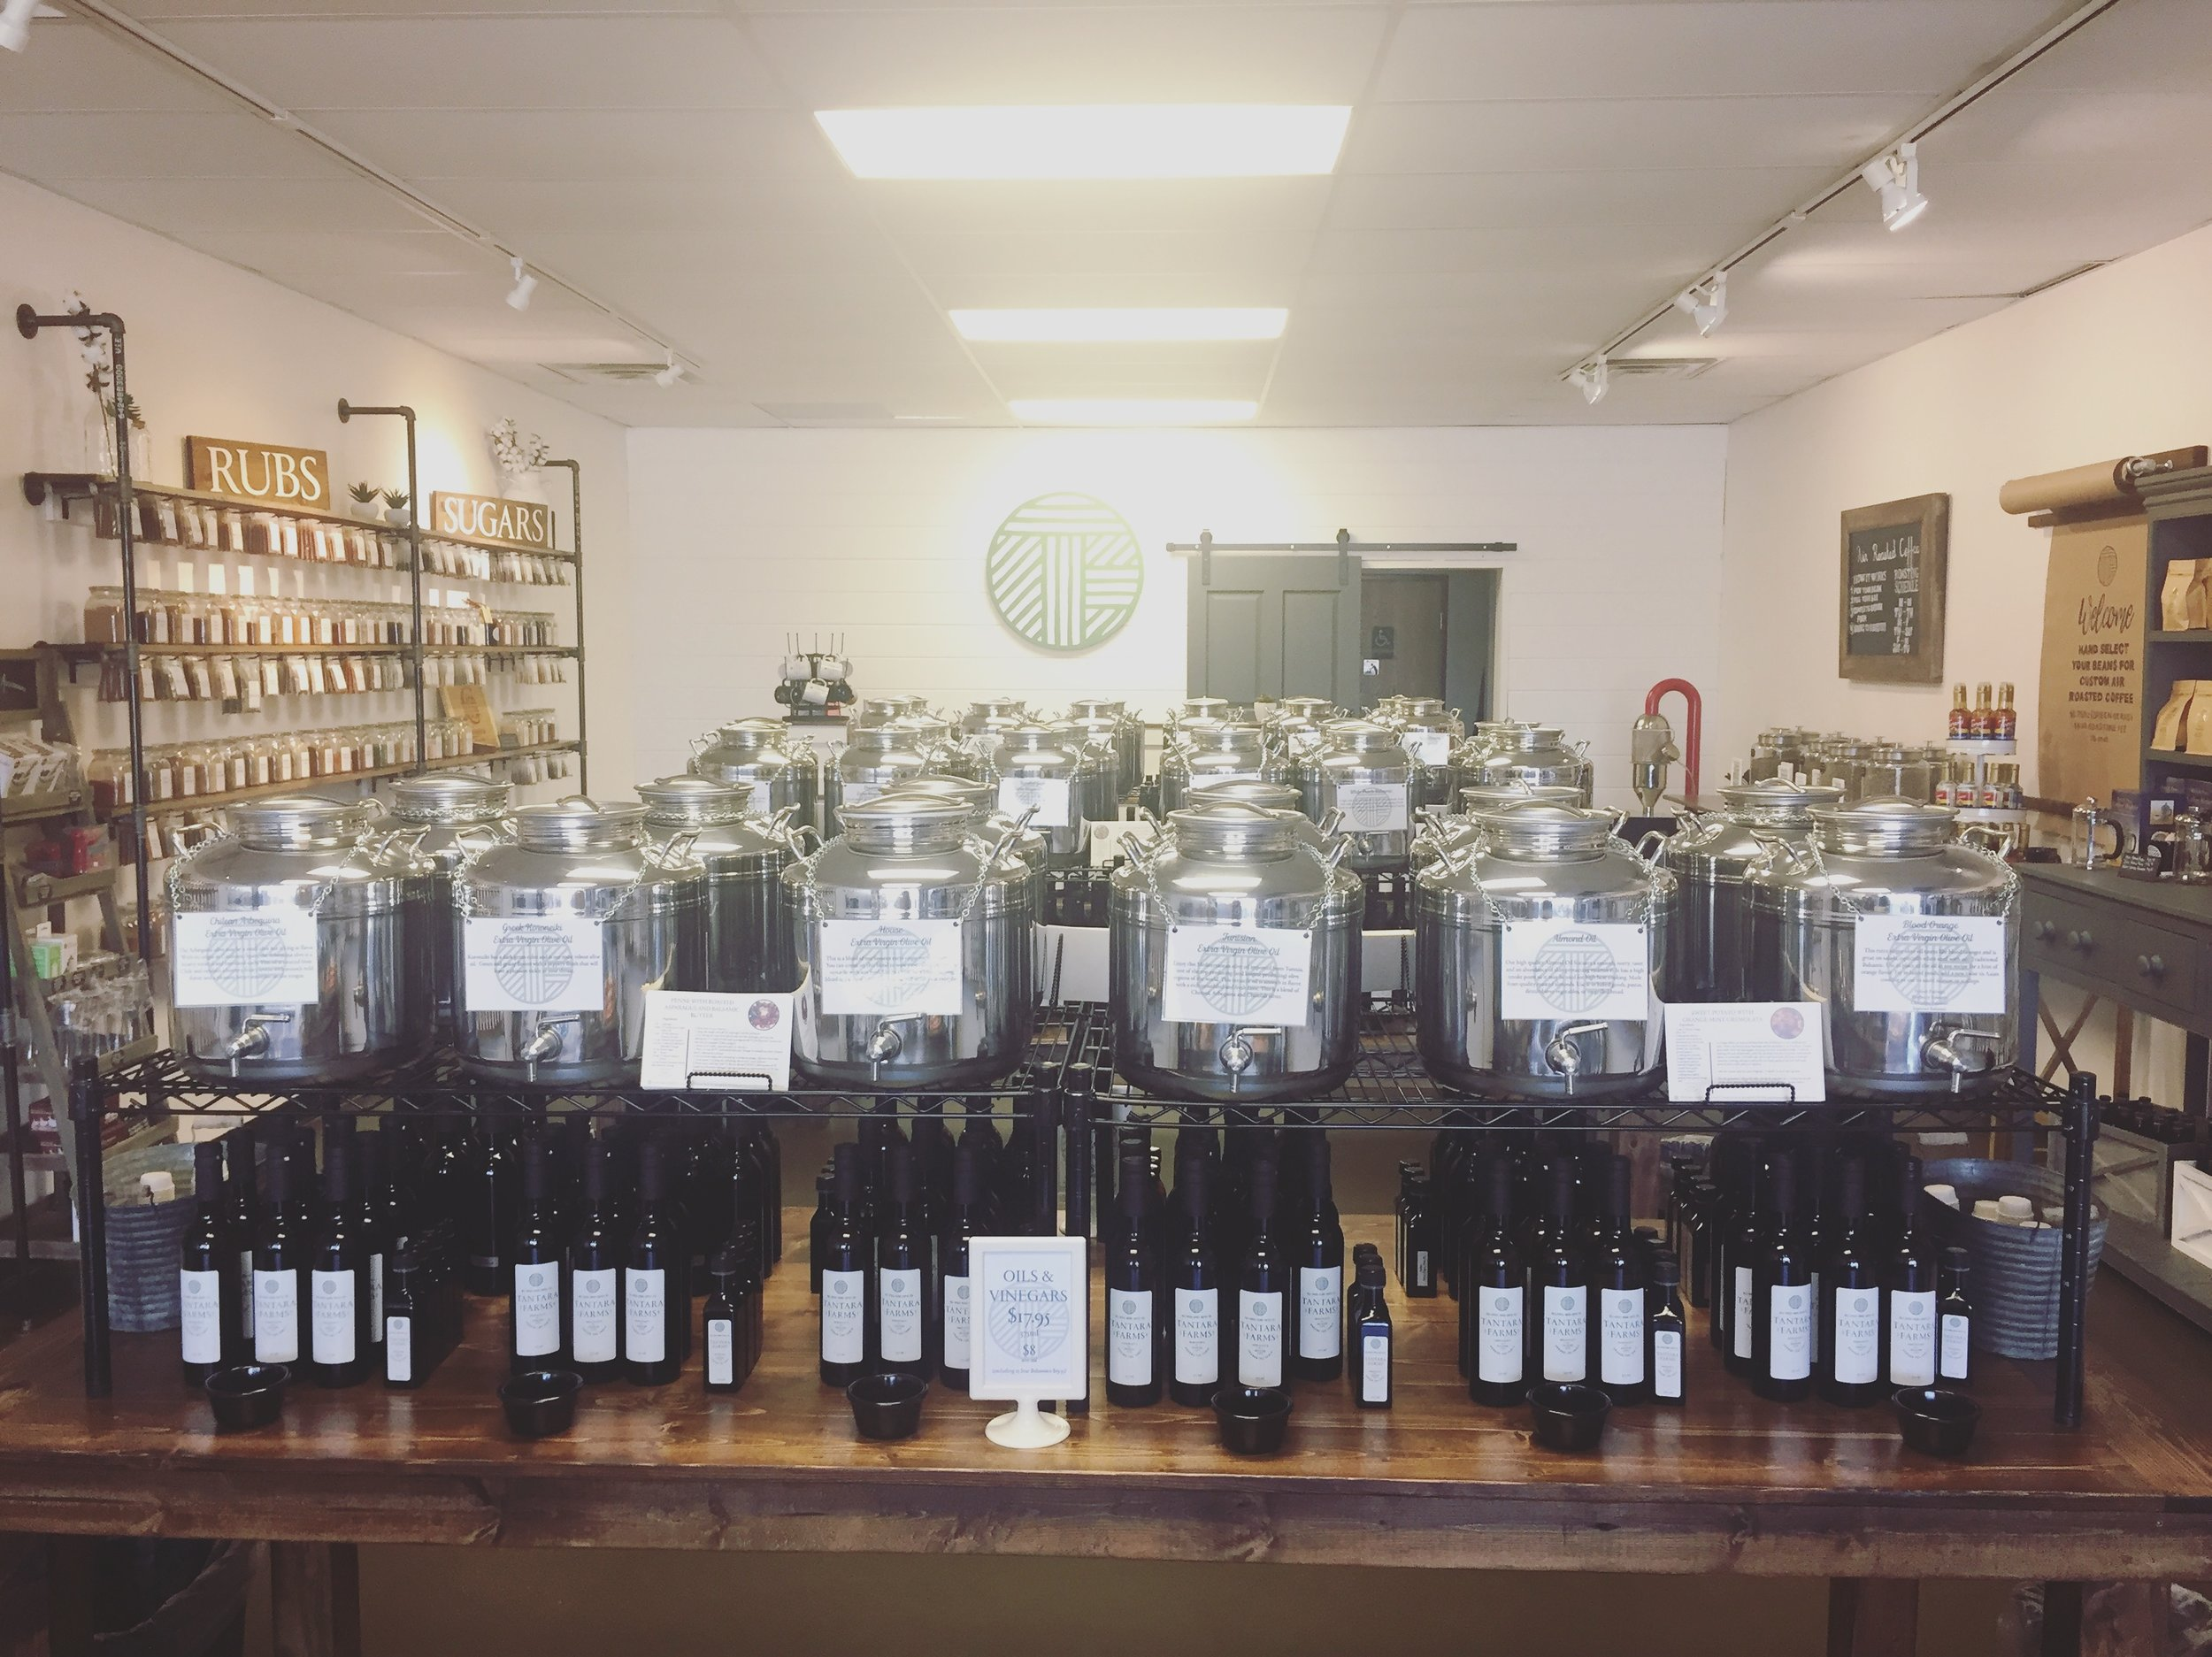 OILS & Vinegars - Tantara Farms carries a variety of infused oils and balsamic vinegars and features a tap room where they can all be sampled.Come sample our selection, and find your favorite; or you can shop our selection online.